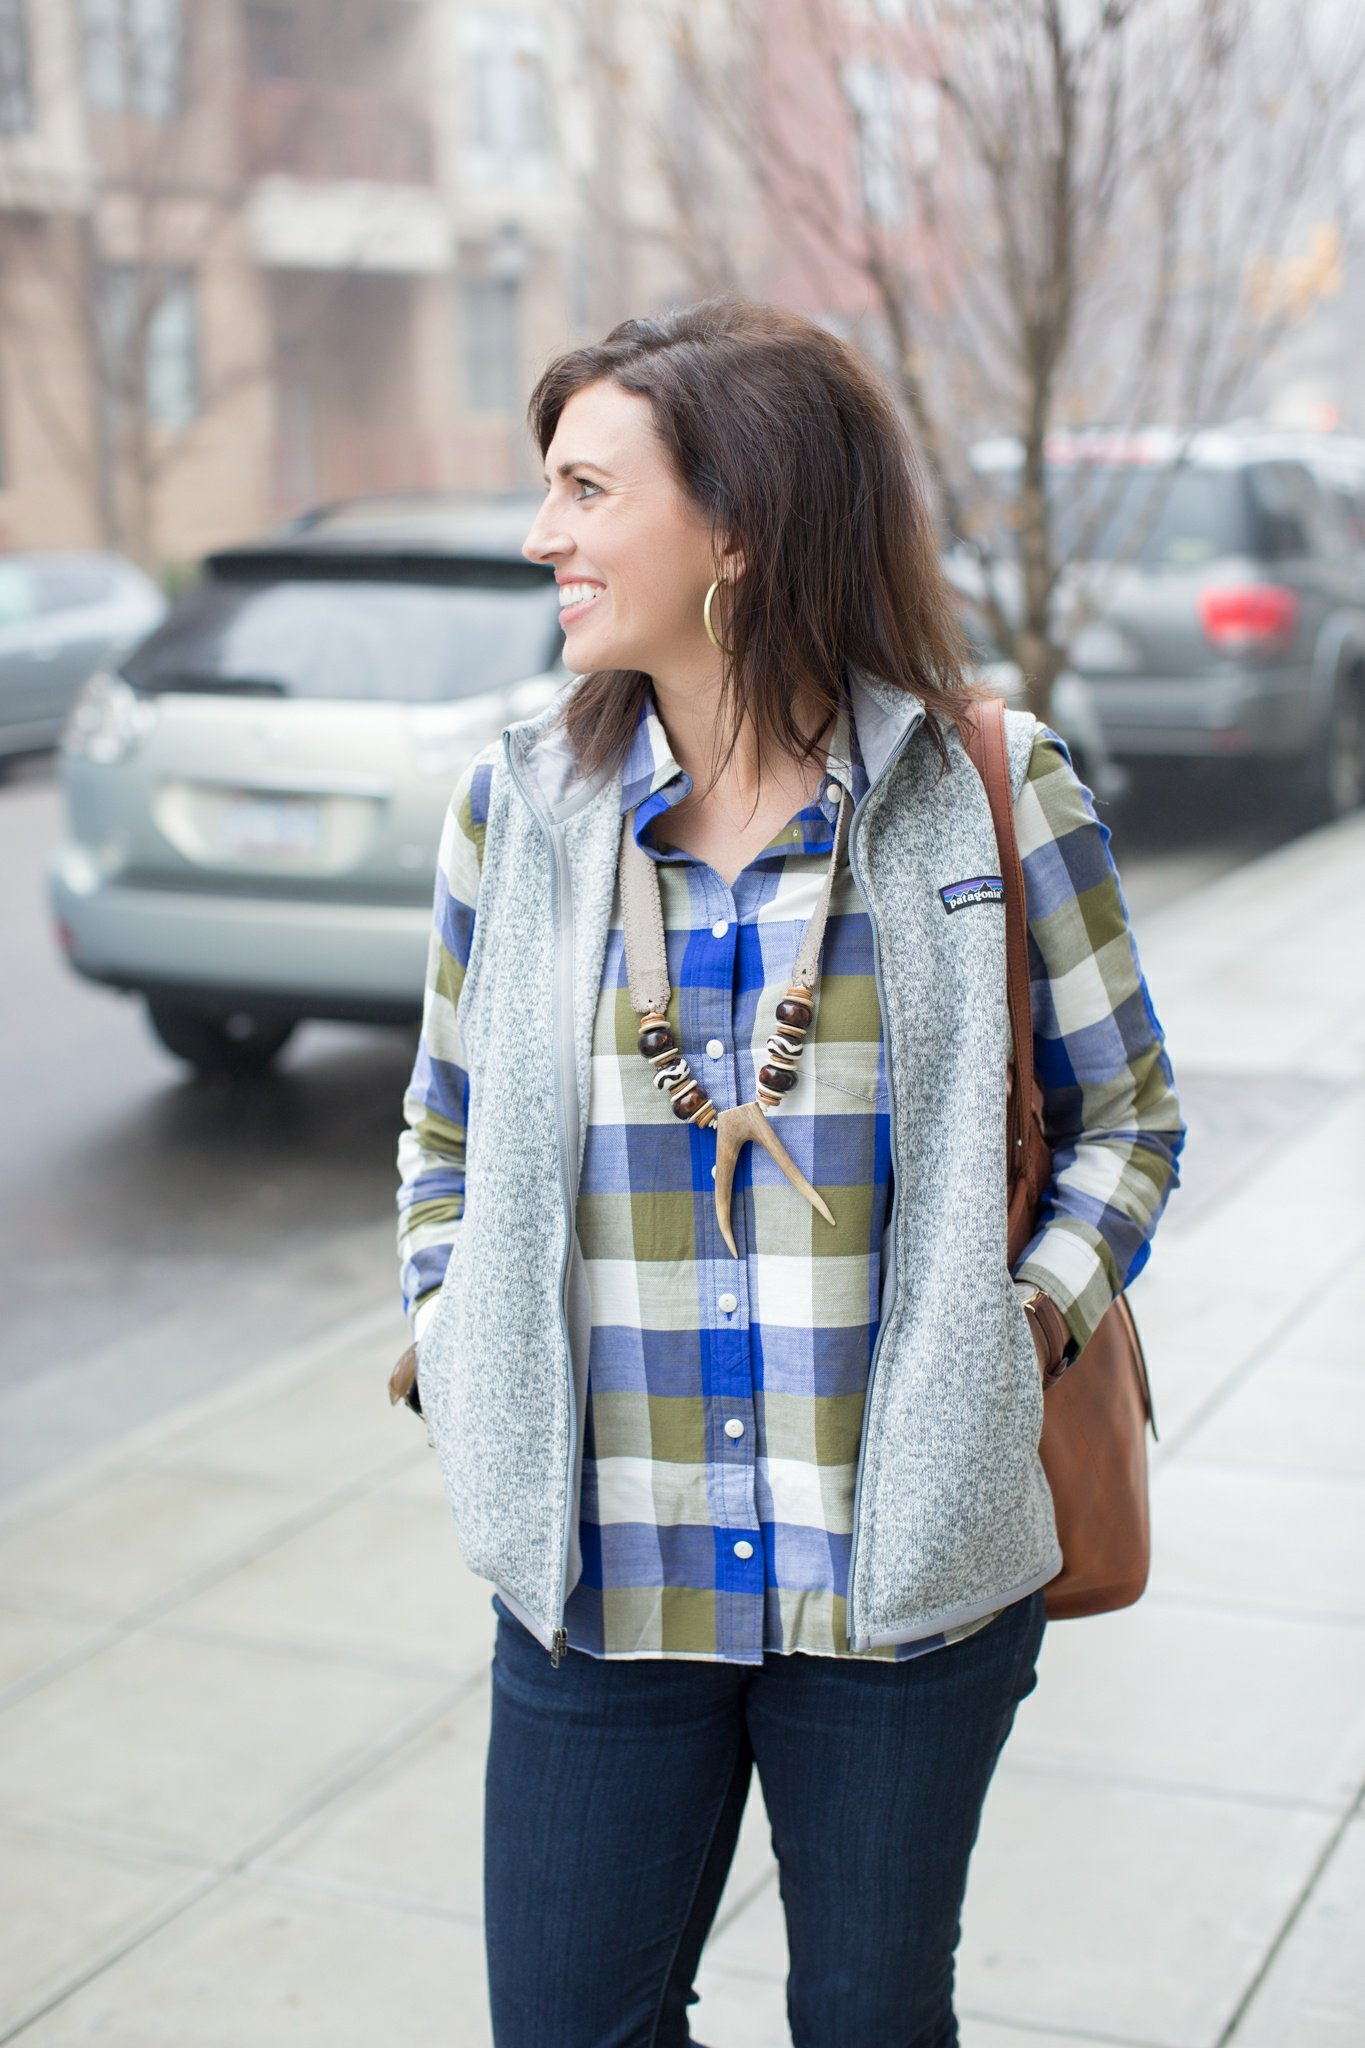 Plaid Flannel + Vest - I'm Fixin' To - @mbg0112